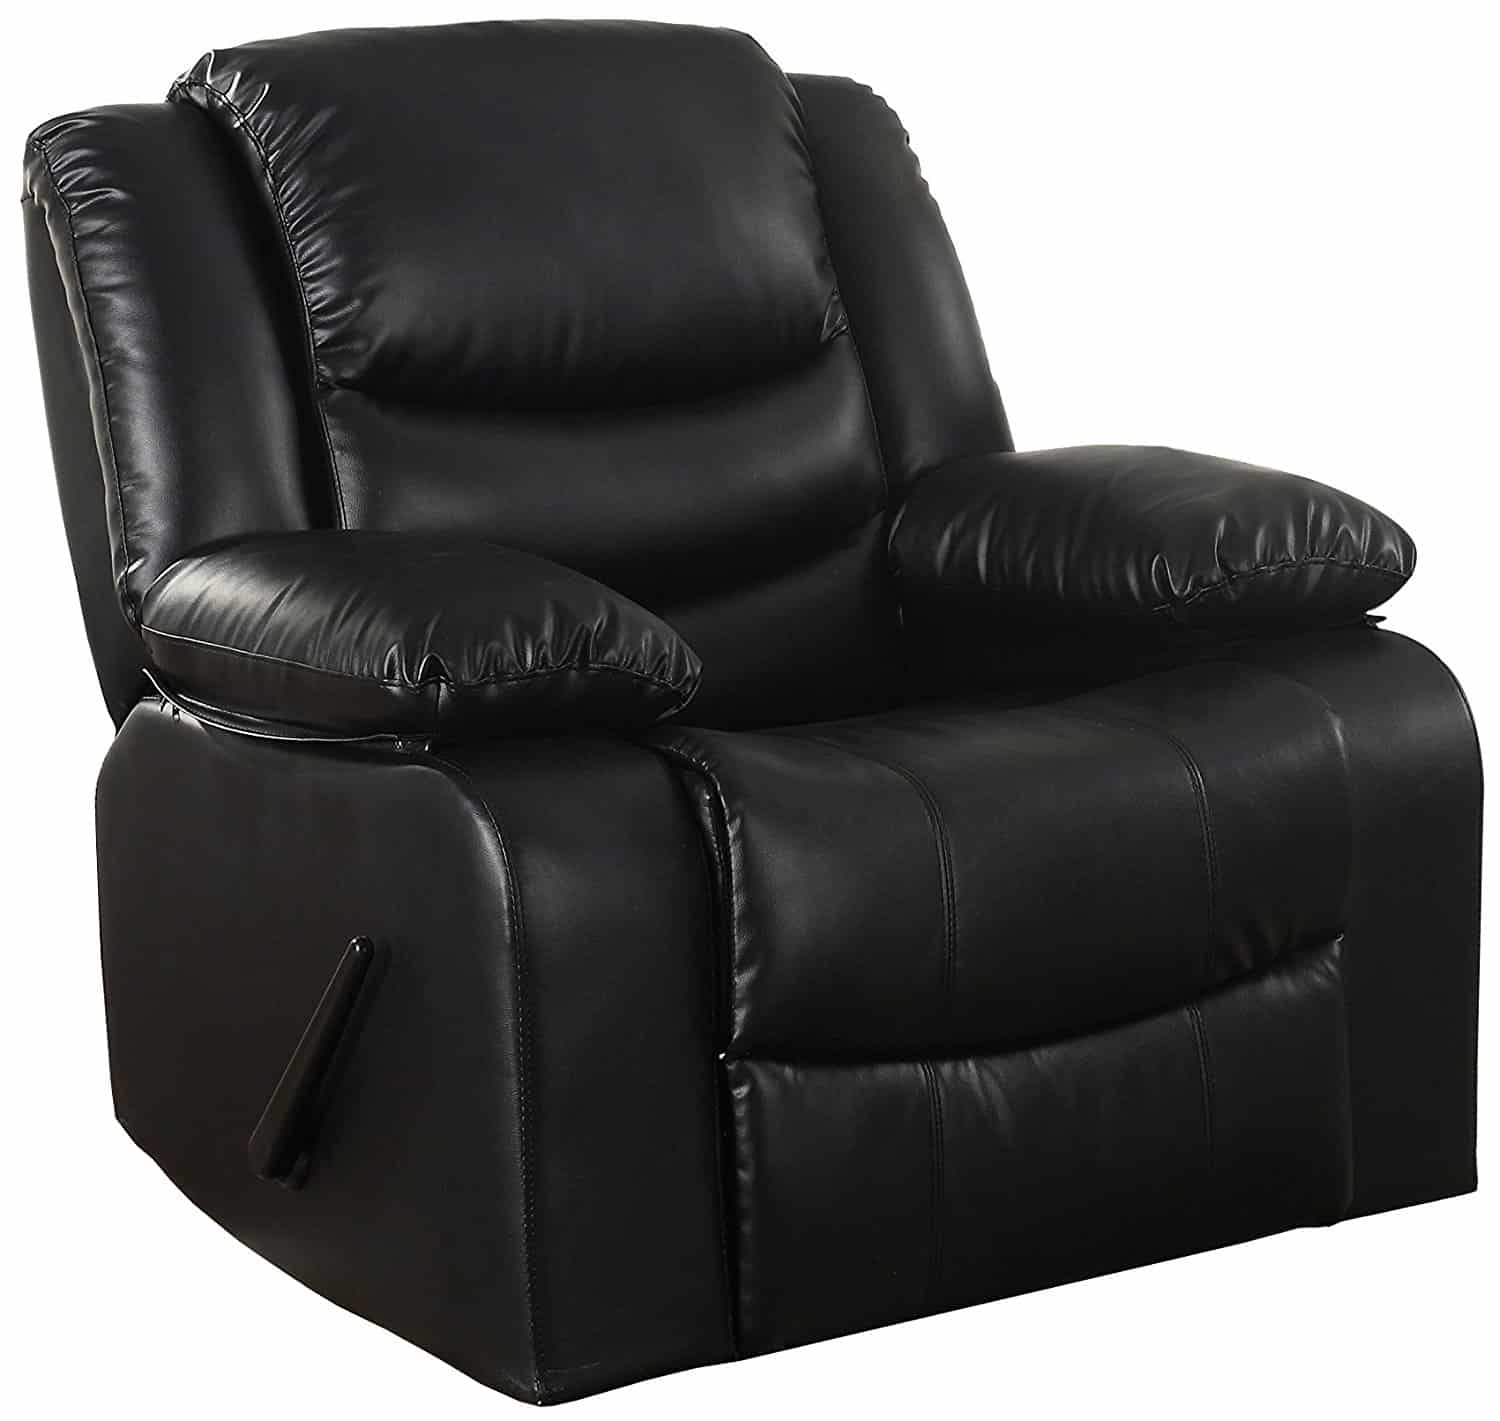 Black reclining rocker with bonded leather upholstery and overstuffed padded seat and arm rests.